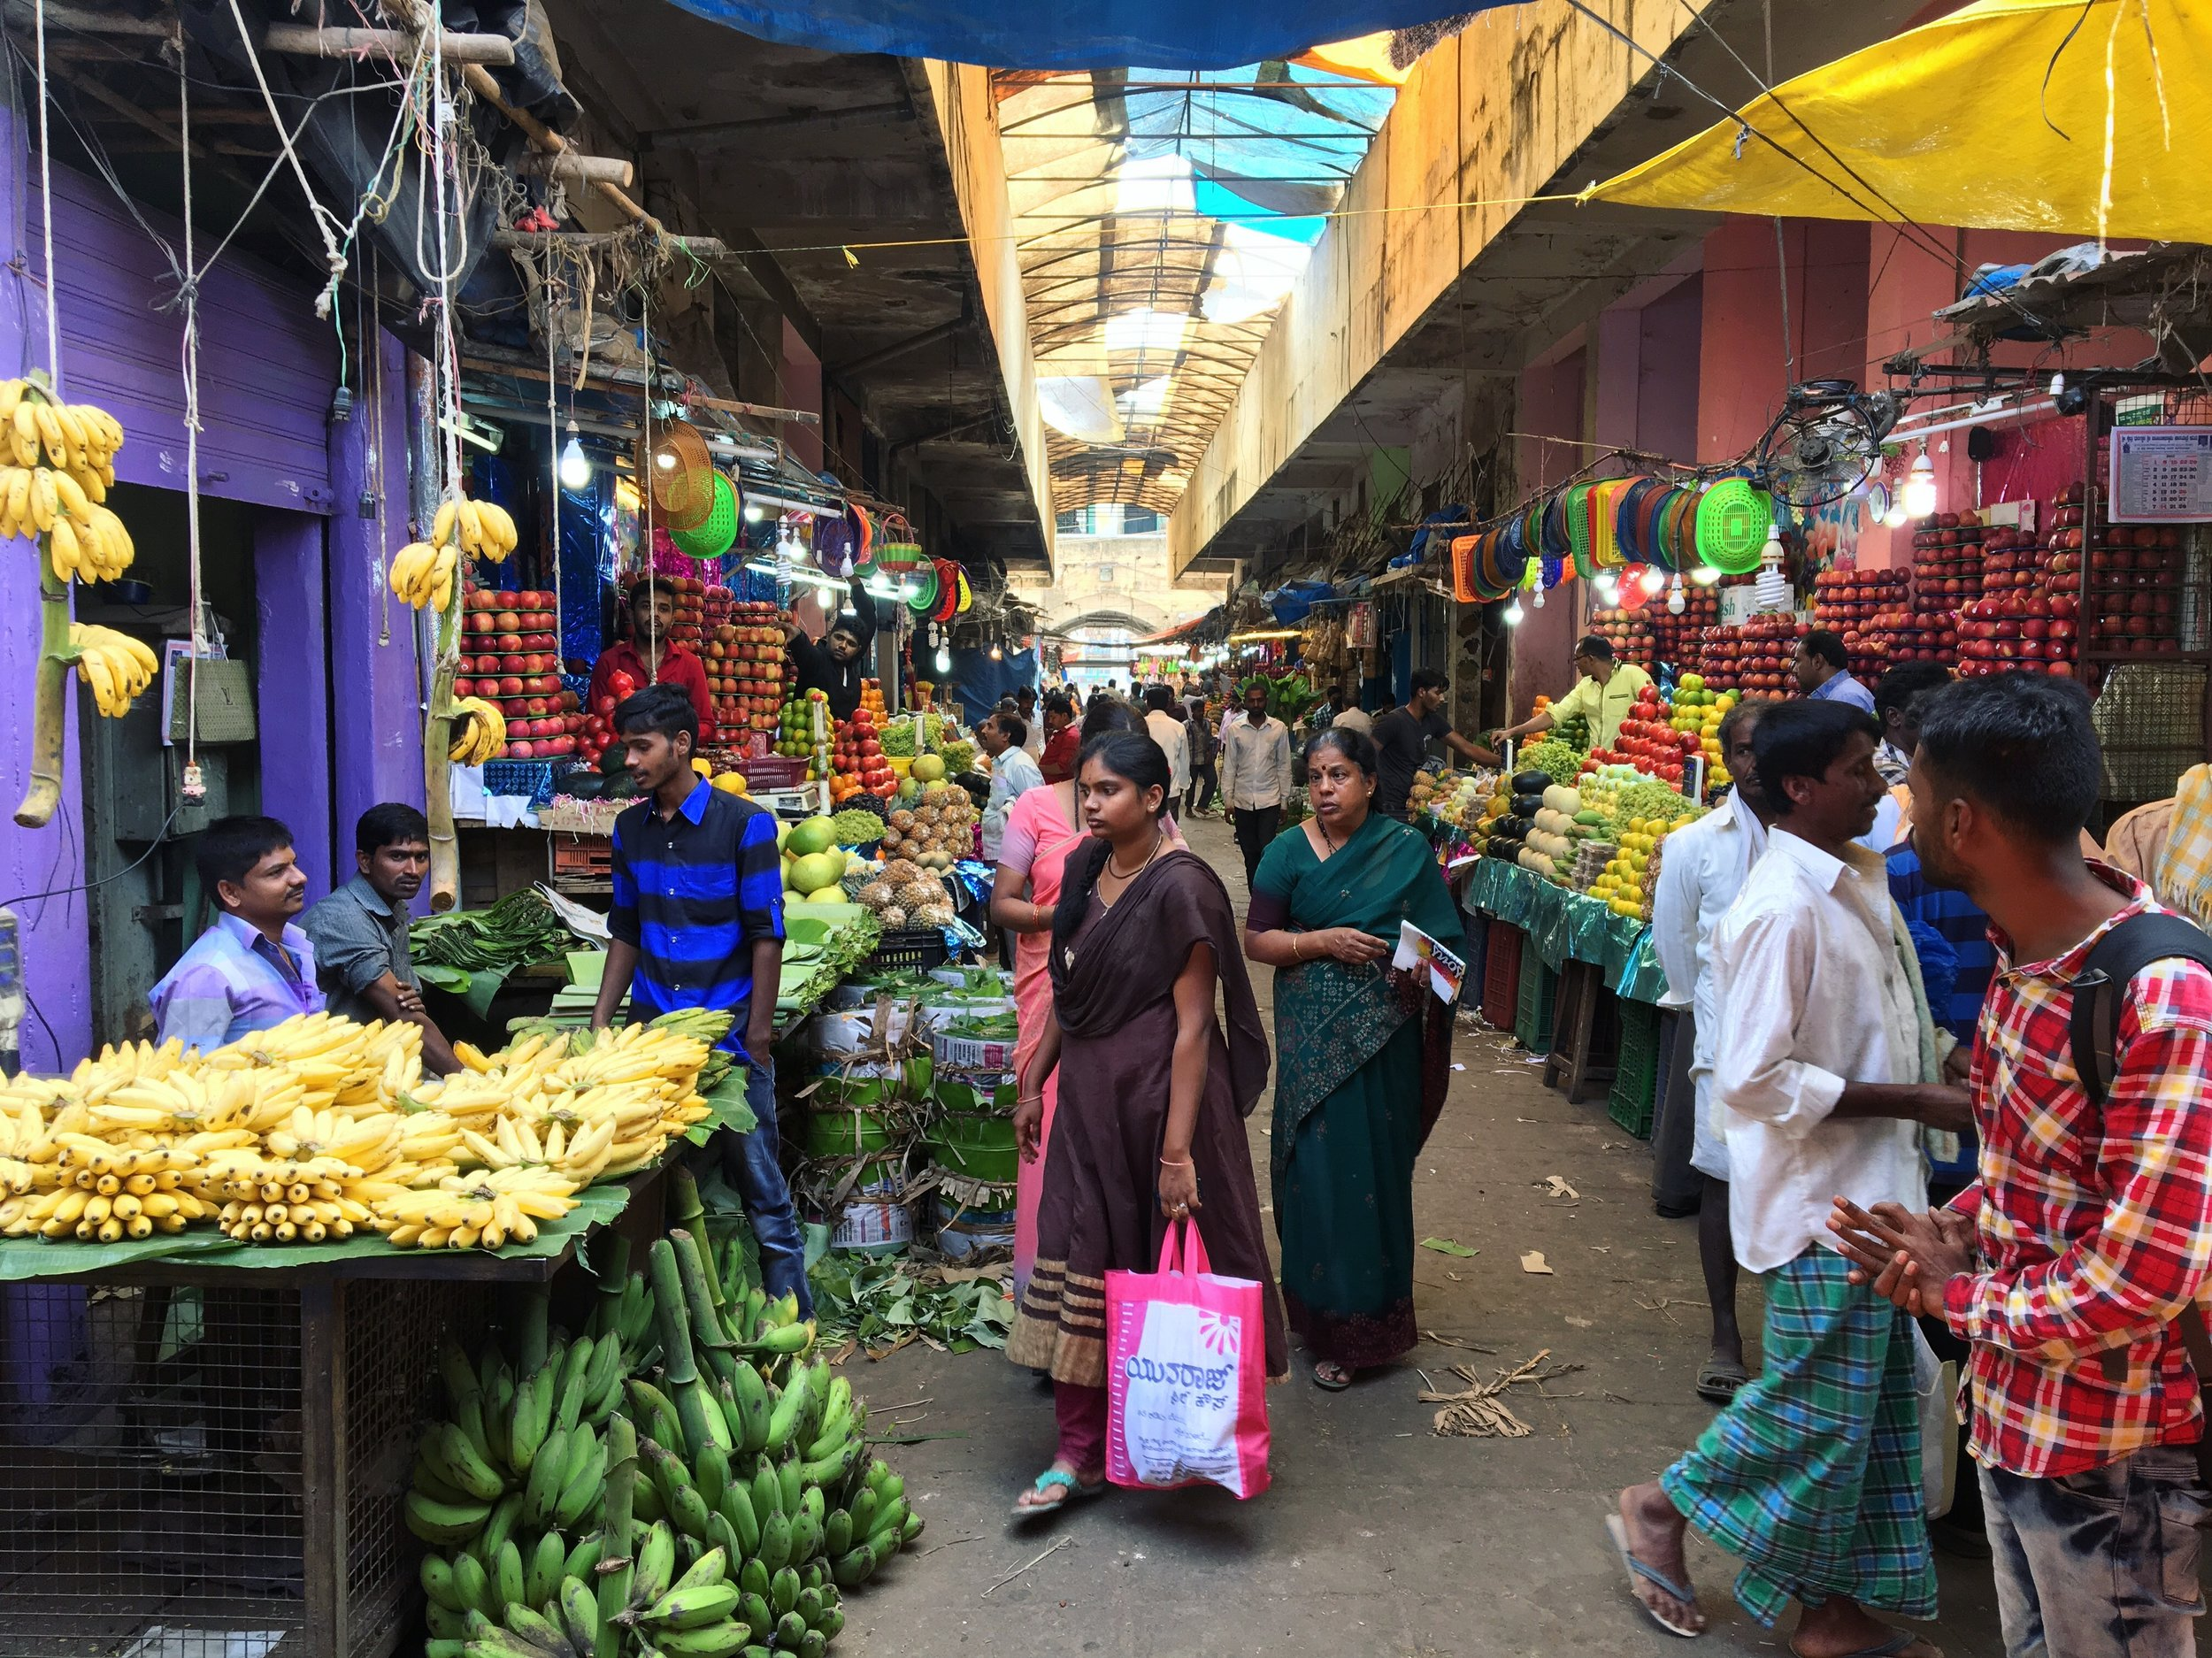 Market (Mysore, India)